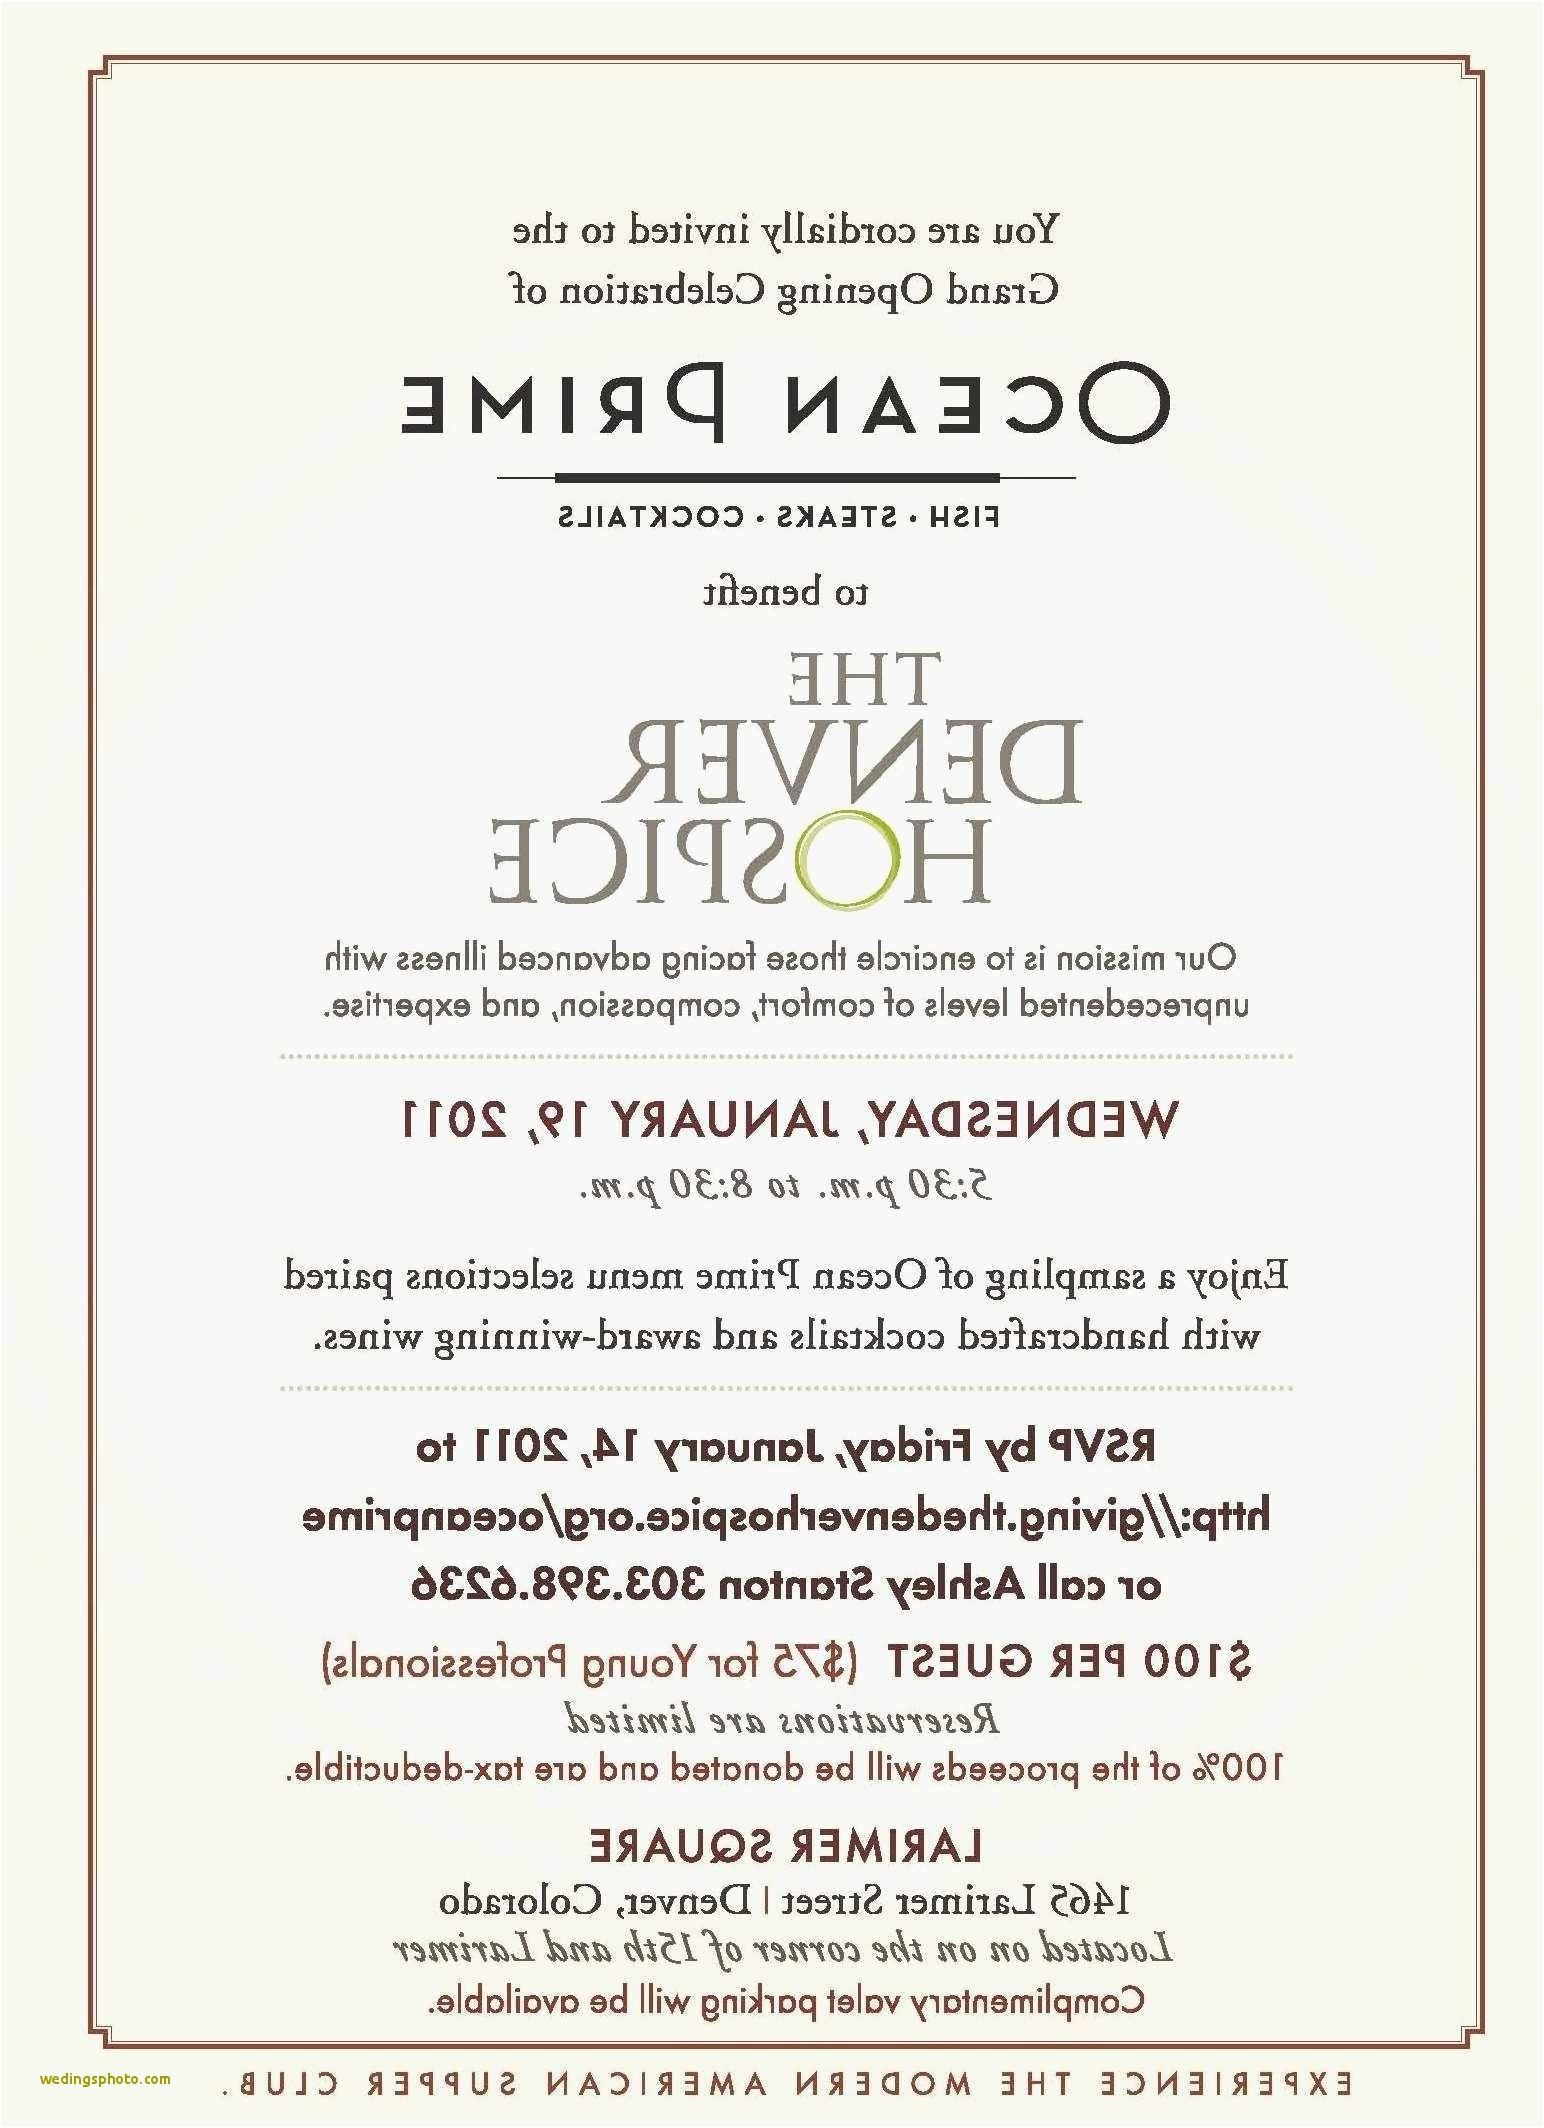 Friends Card Invitation Quotes In English Wedding Invitation Wording for Friends Sample Wedding